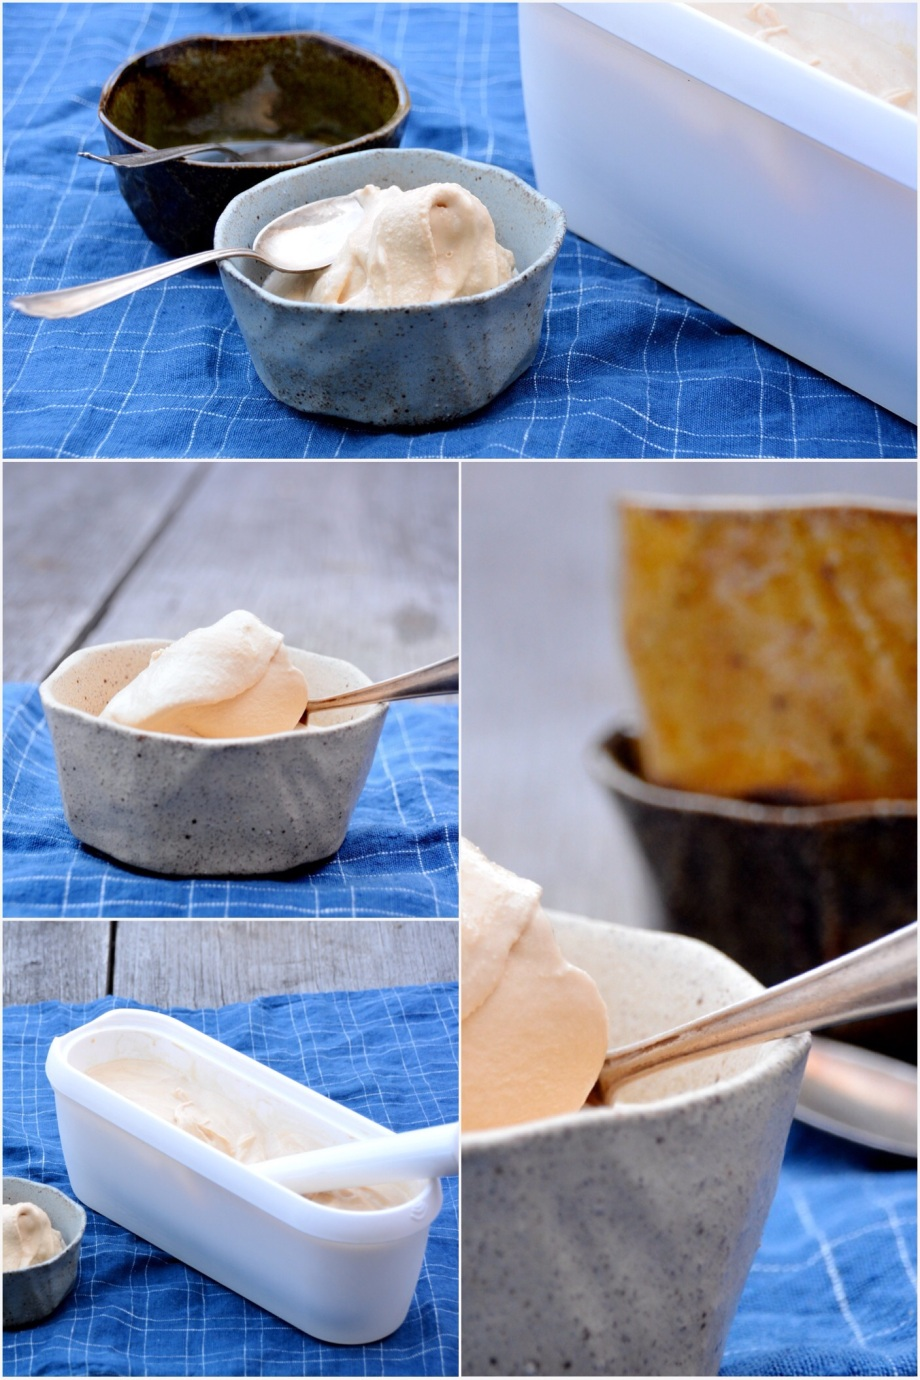 Italy on my mind-dulce de leche ice cream gelato